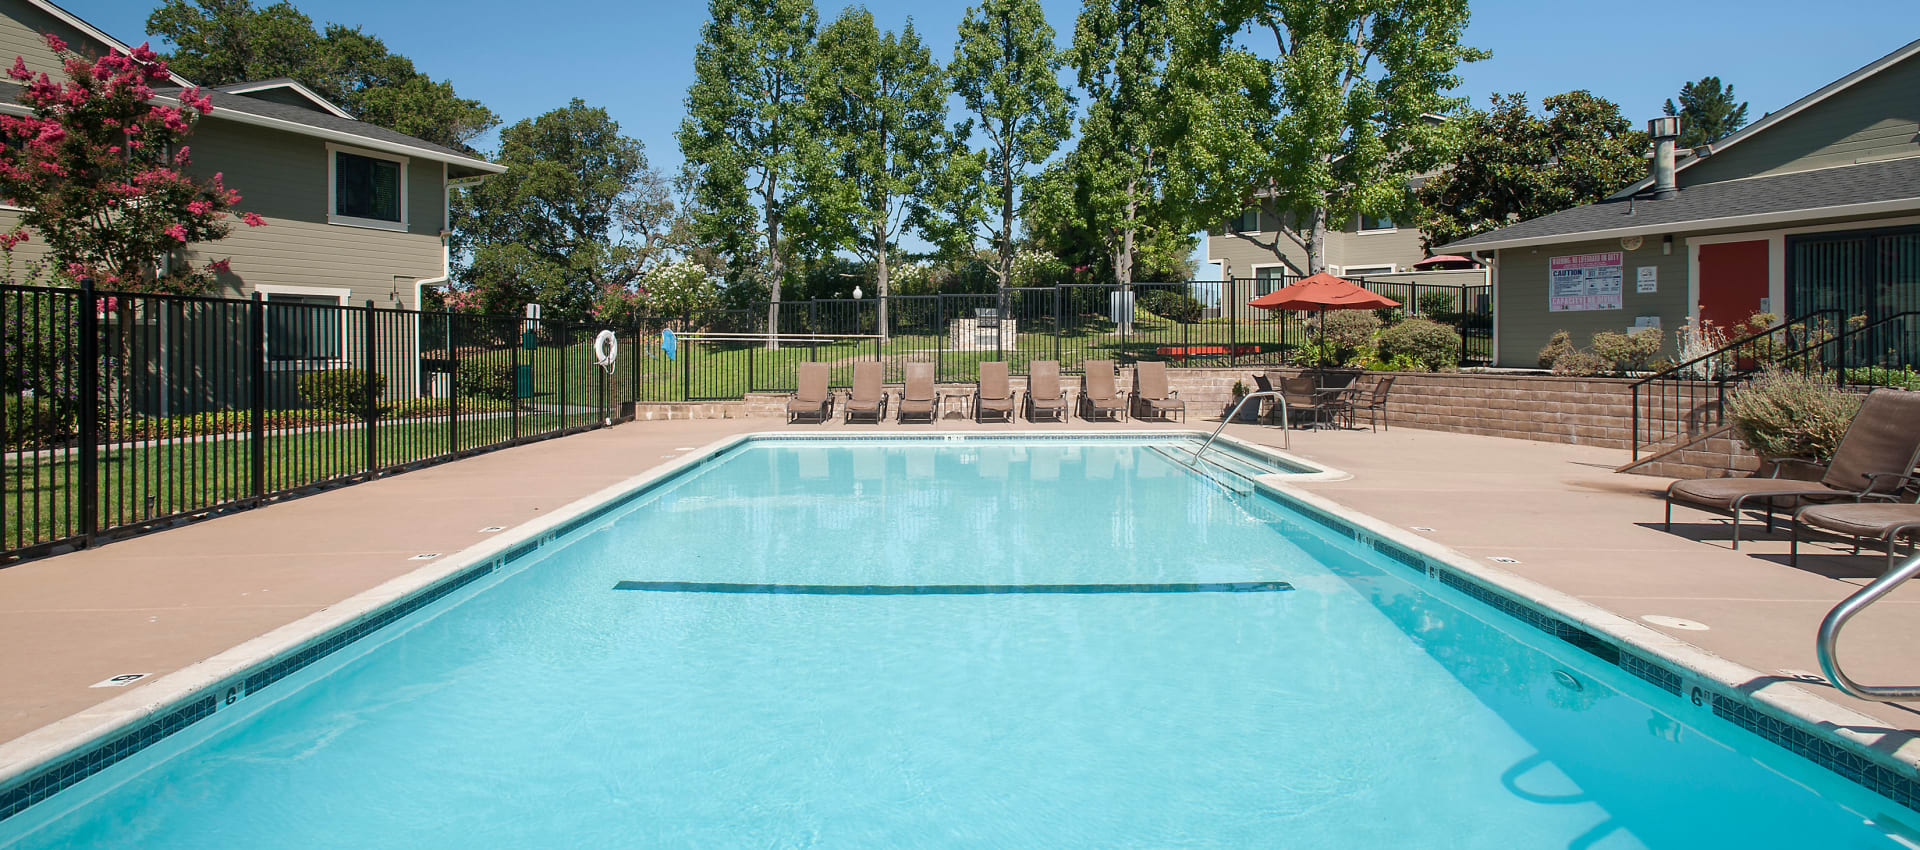 Expansive swimming pool at Ridgecrest Apartment Homes in Martinez, California